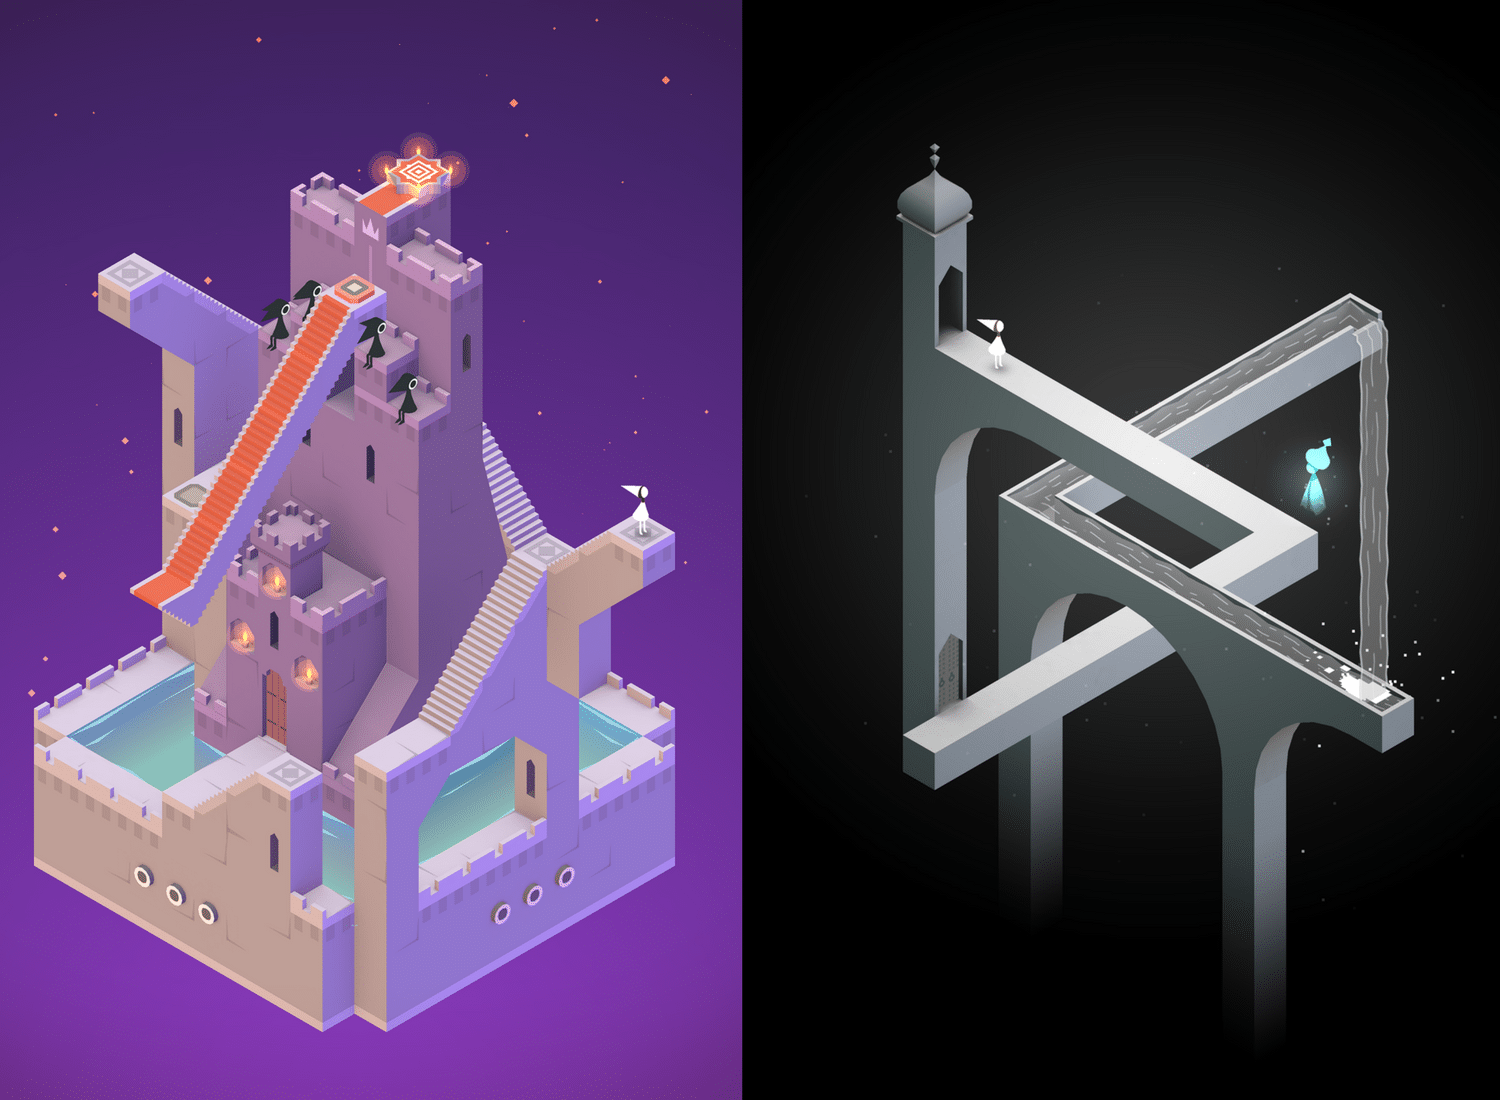 Monument Valley's mazes and puzzling colorful frames